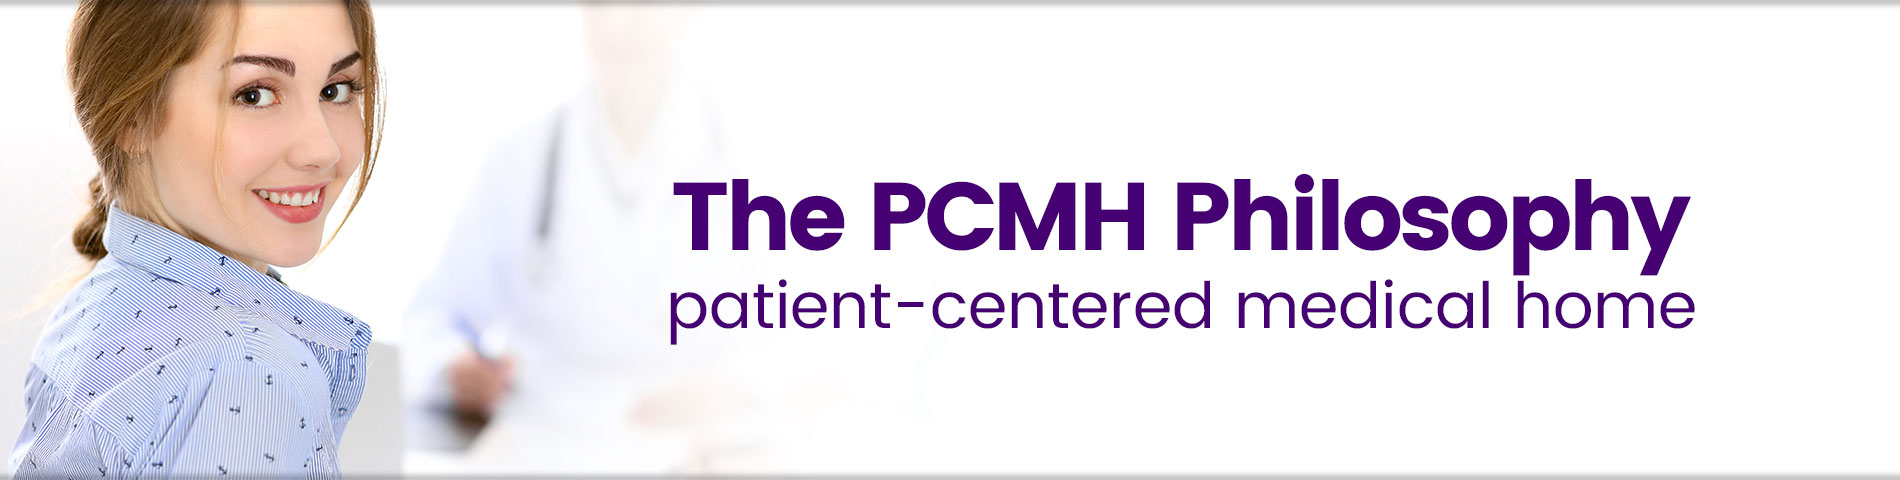 Welcome to Your Patient-Centered Medical Home